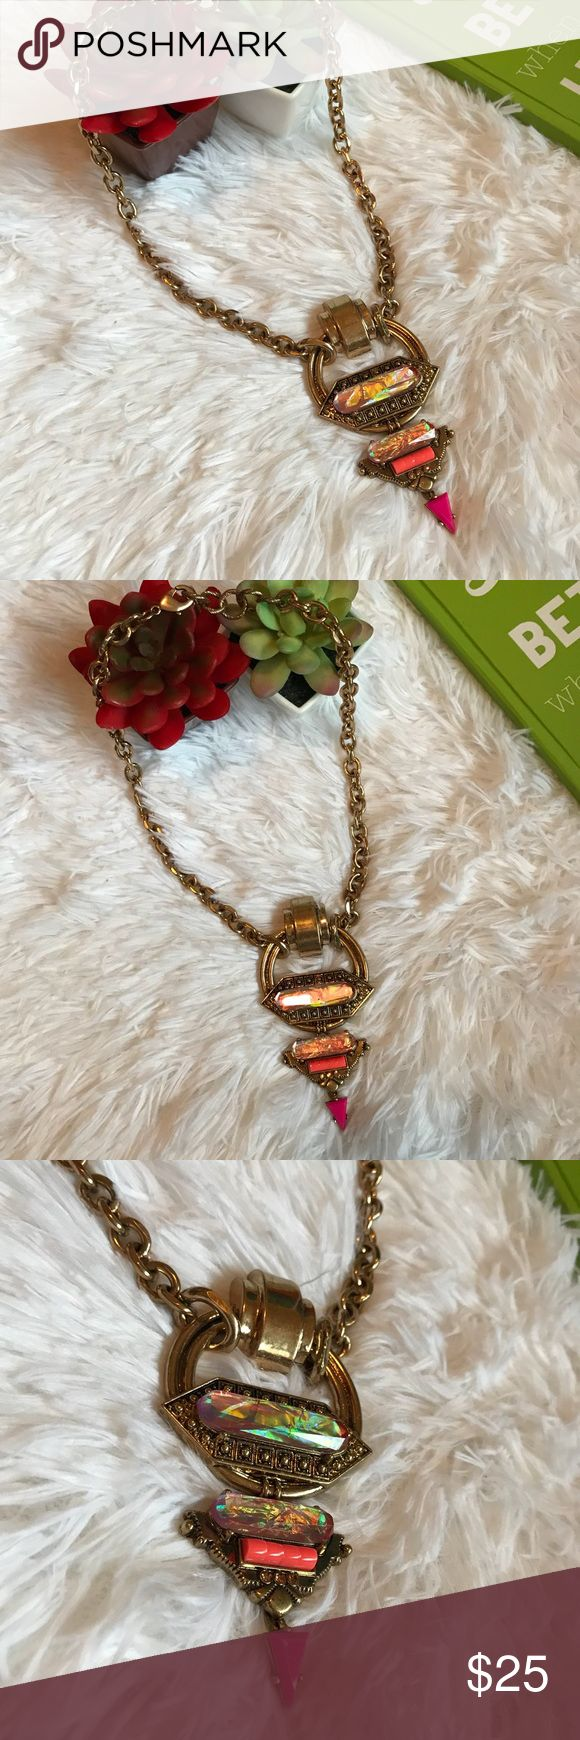 """Just In 💓 Gold Chunky Opal Statement Necklace 💓 New Boutique Chunky Gold necklace with round pendant and Pink opal and orange details. Great quality Jewelry. Approx 19""""-20"""" 💥Bundle & Save💥 Jewelry Necklaces #GoldJewelleryChunky"""